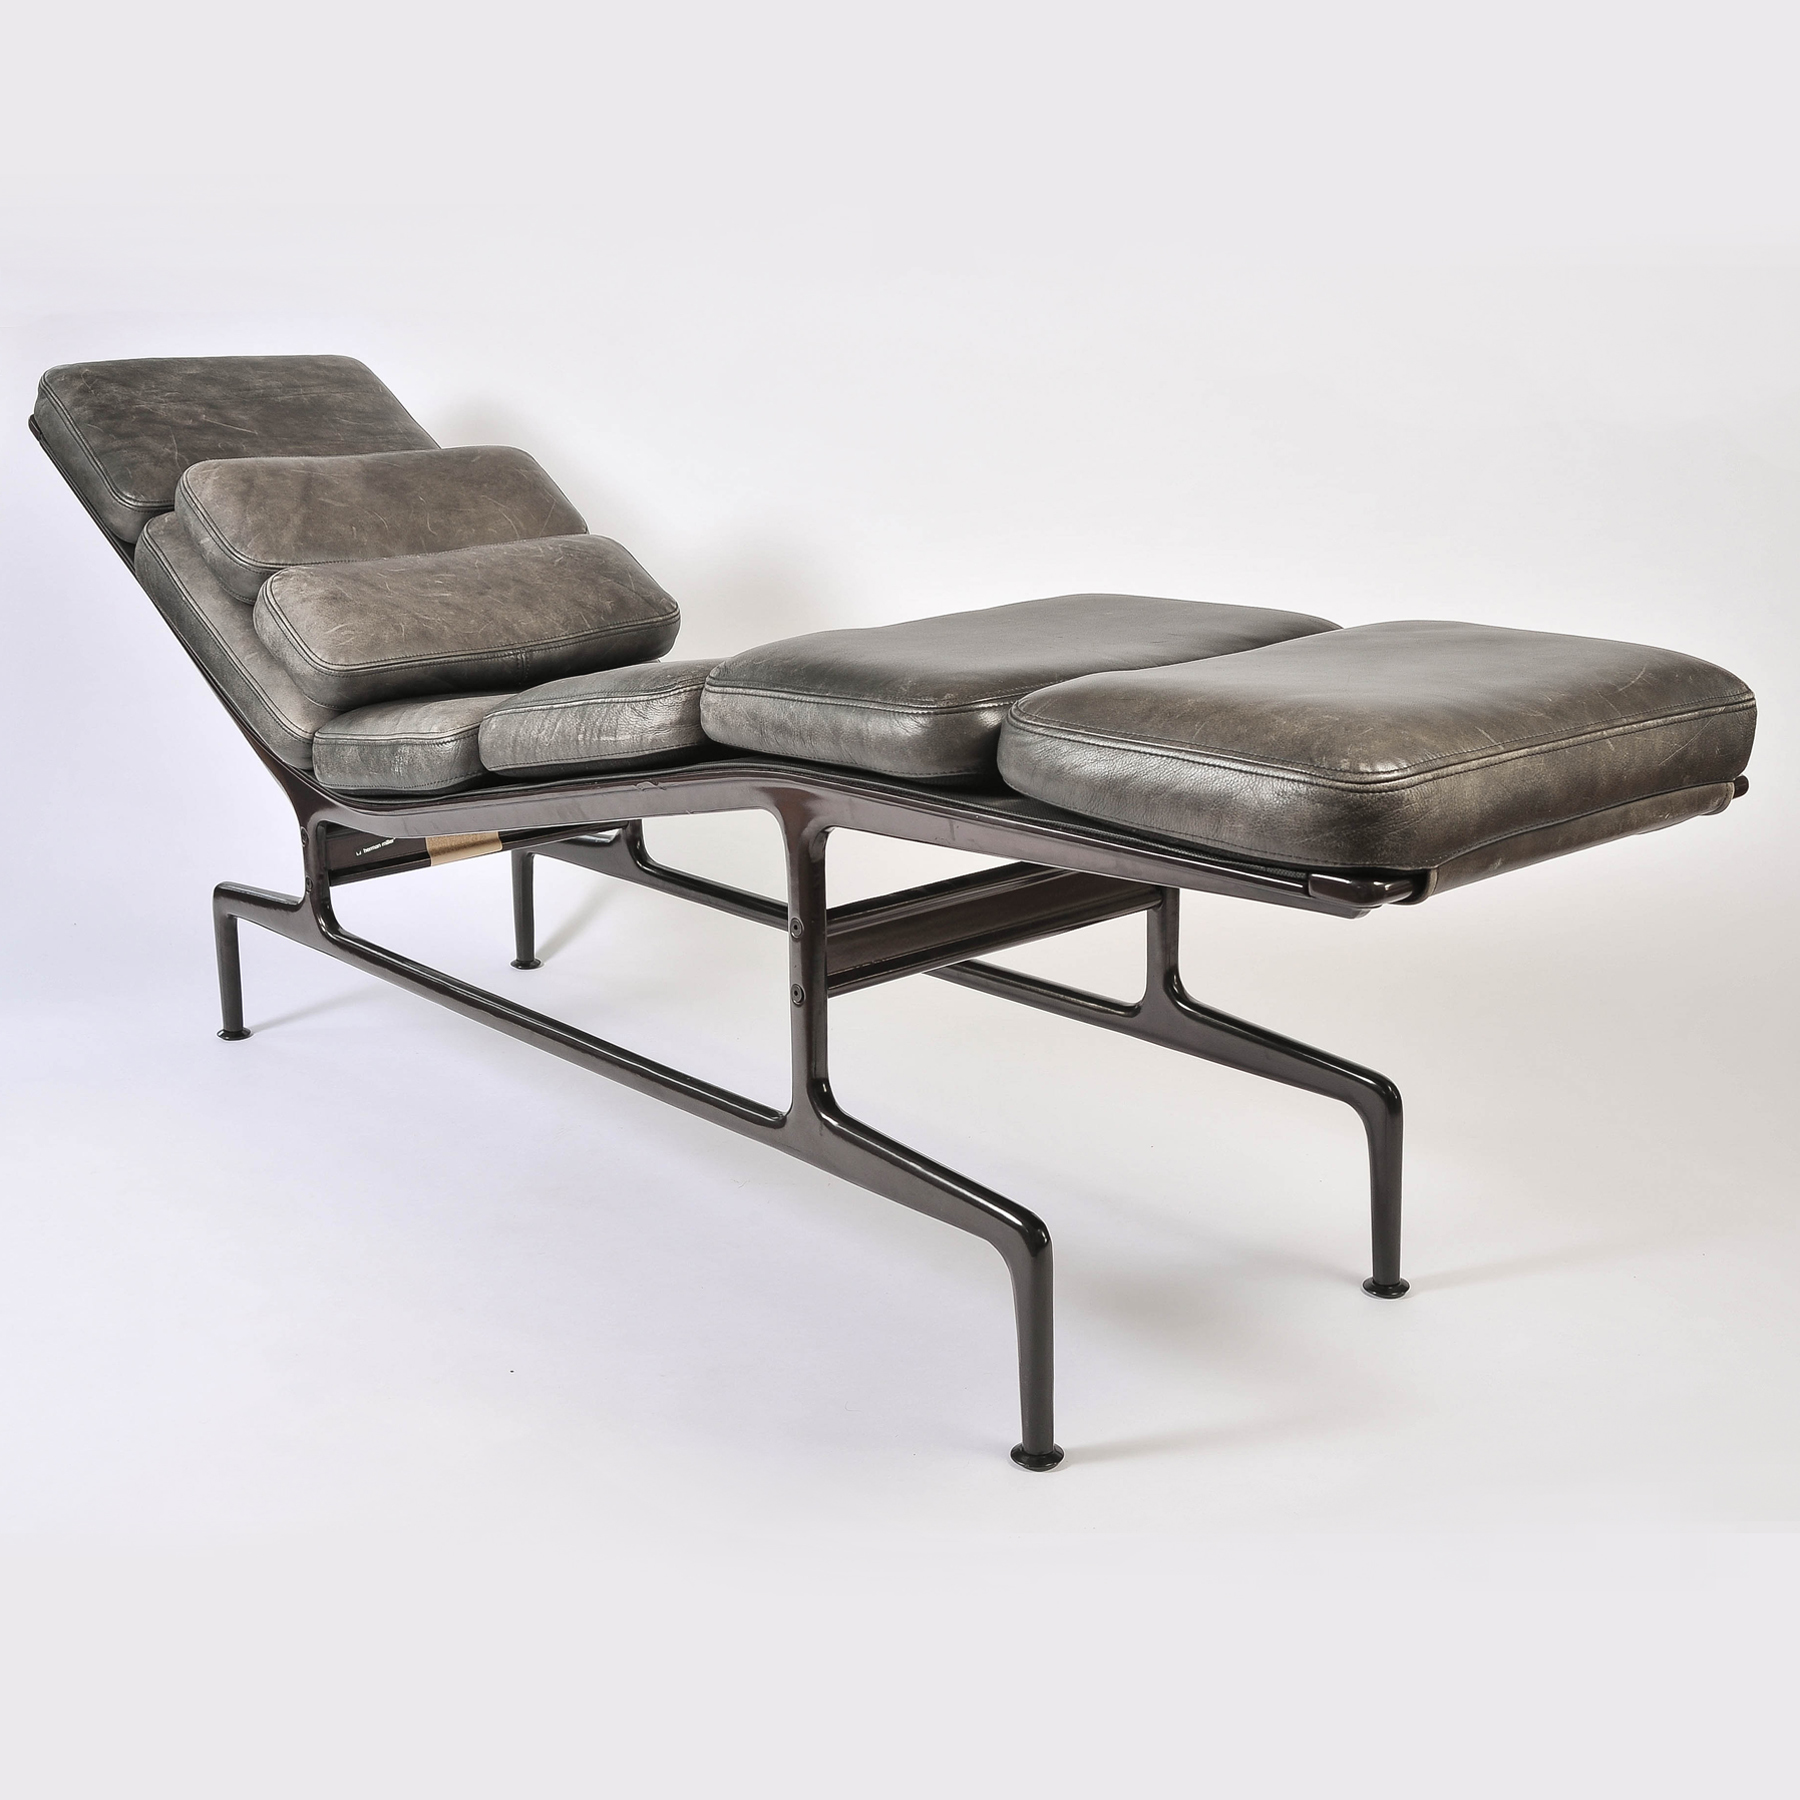 Charles Eames Chaise Longue Main